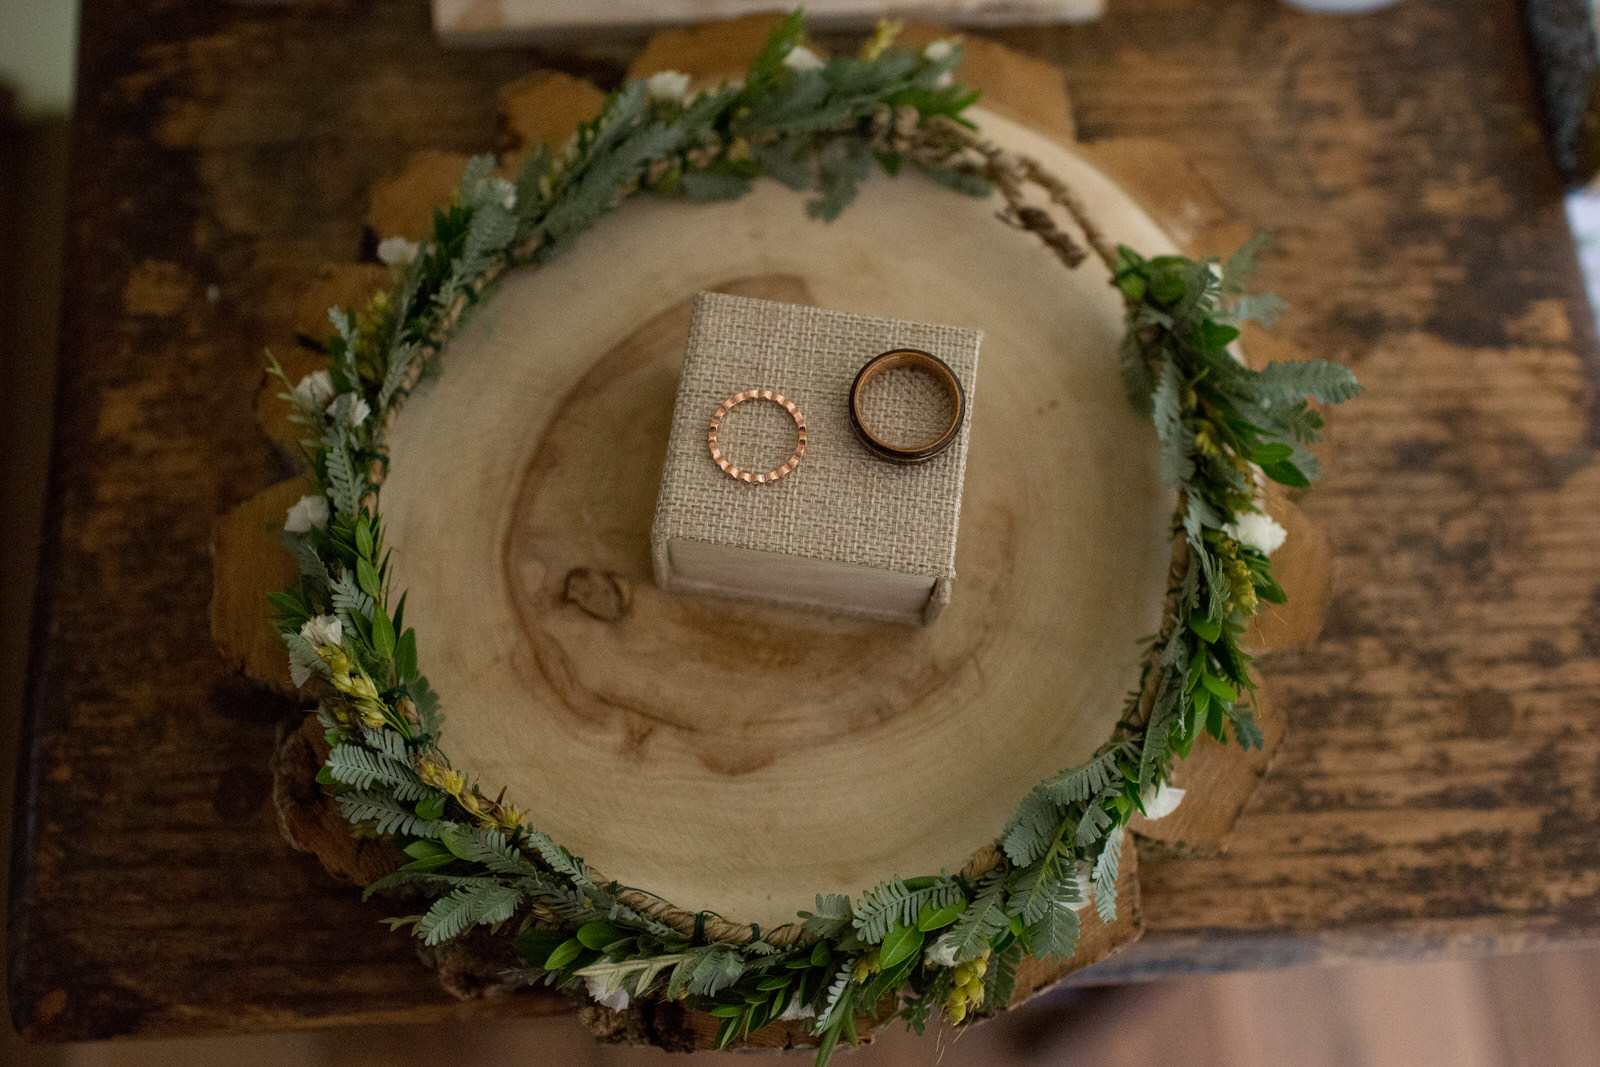 a copper female wedding band and a wooden male wedding band on a burlap box an a stump of wood with a floral crown surrounding it